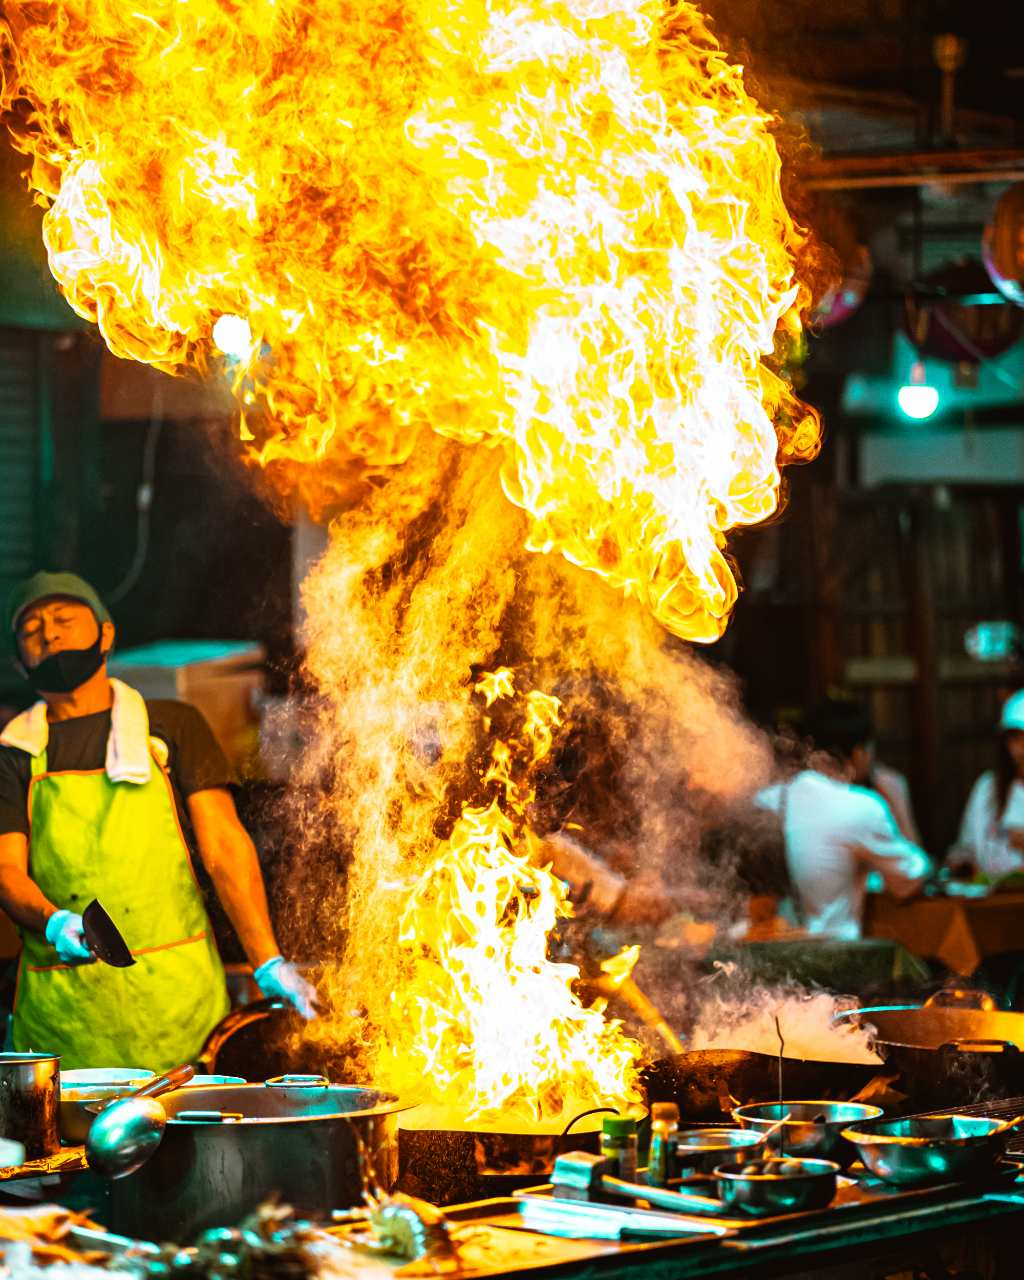 Flaming hot cooking